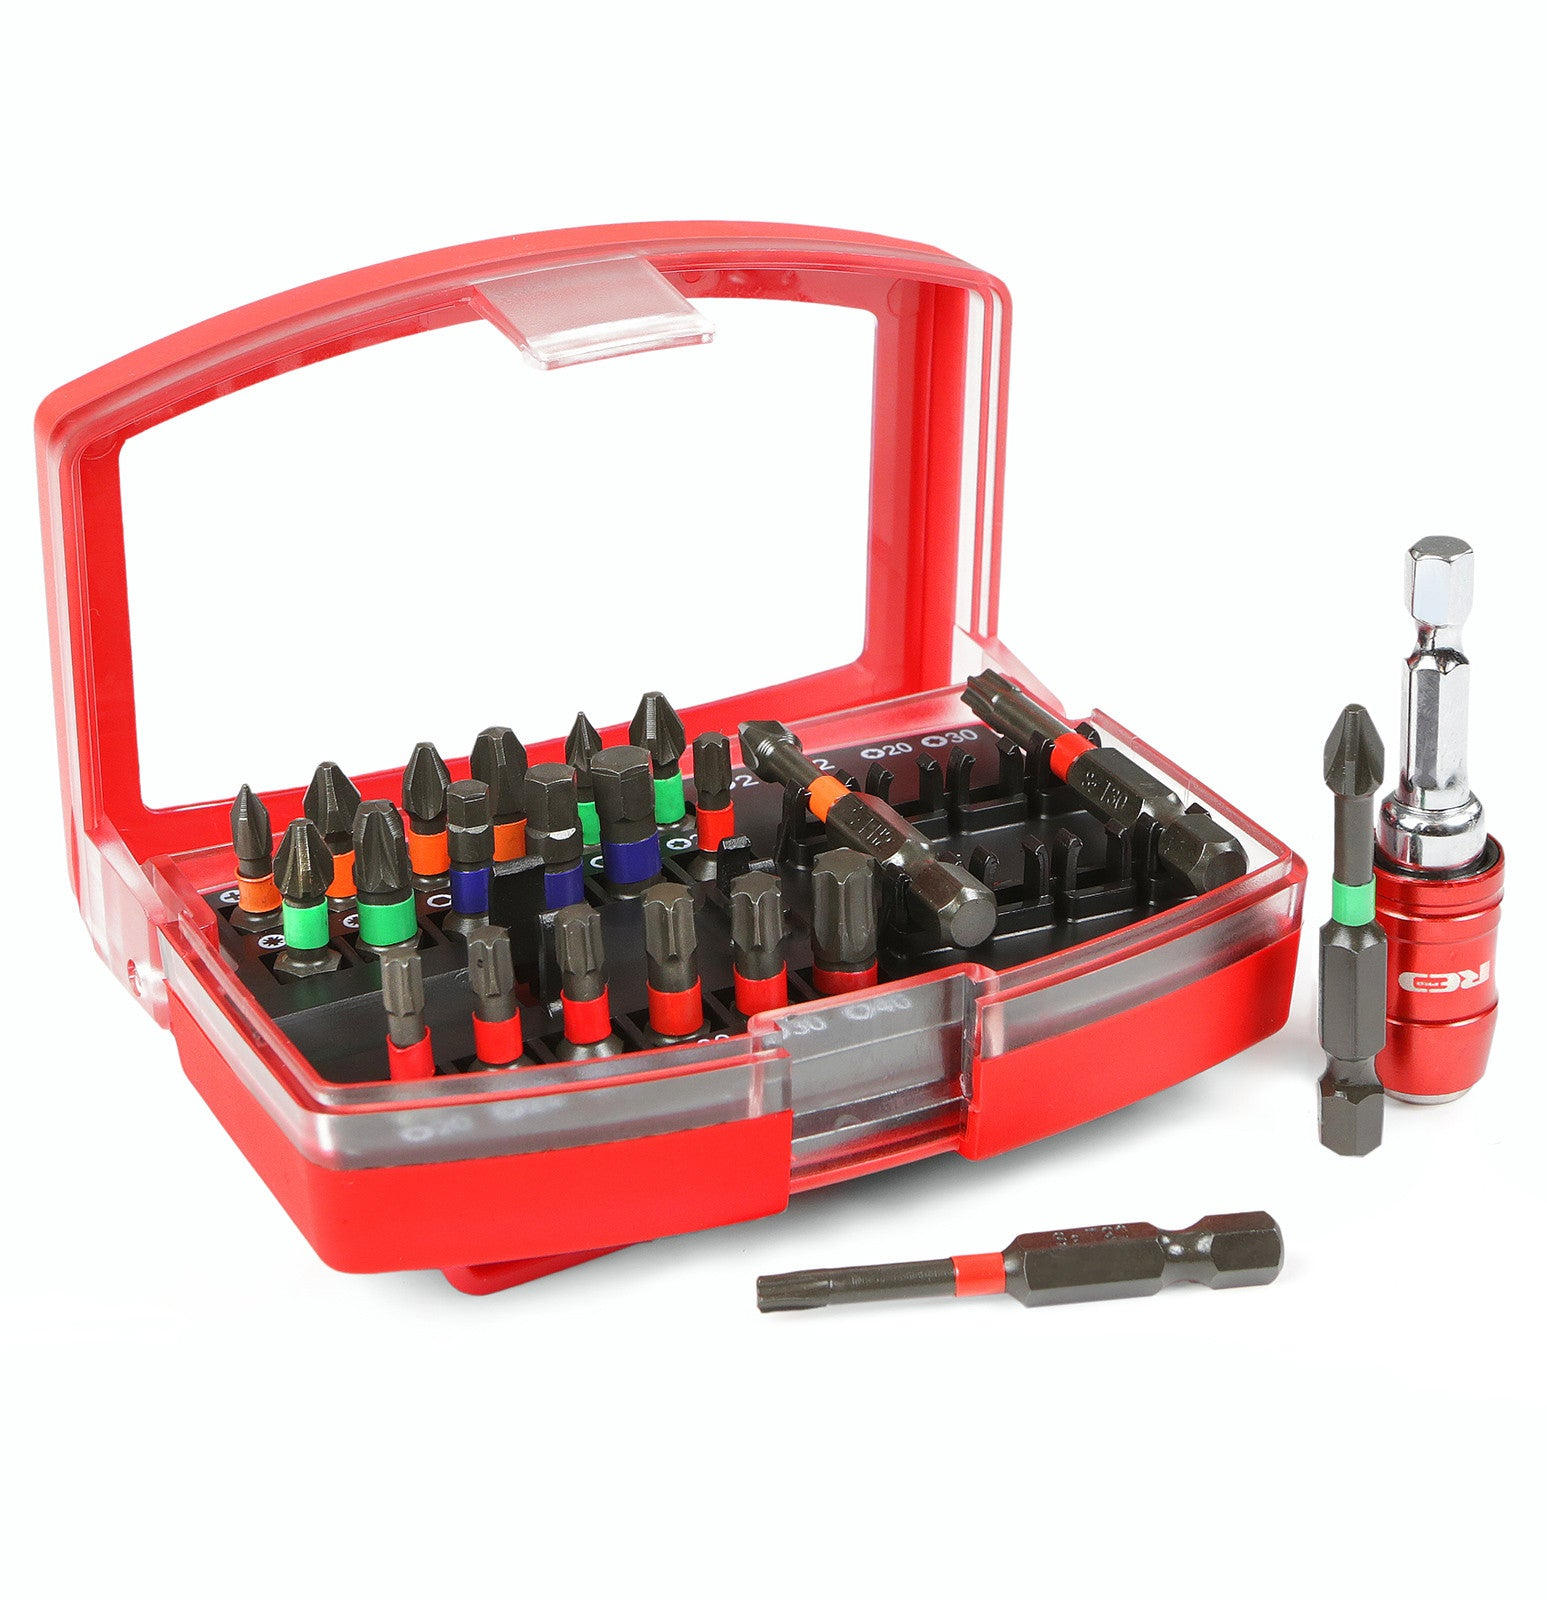 Red Pro Tools 23pc Impact Bit Set